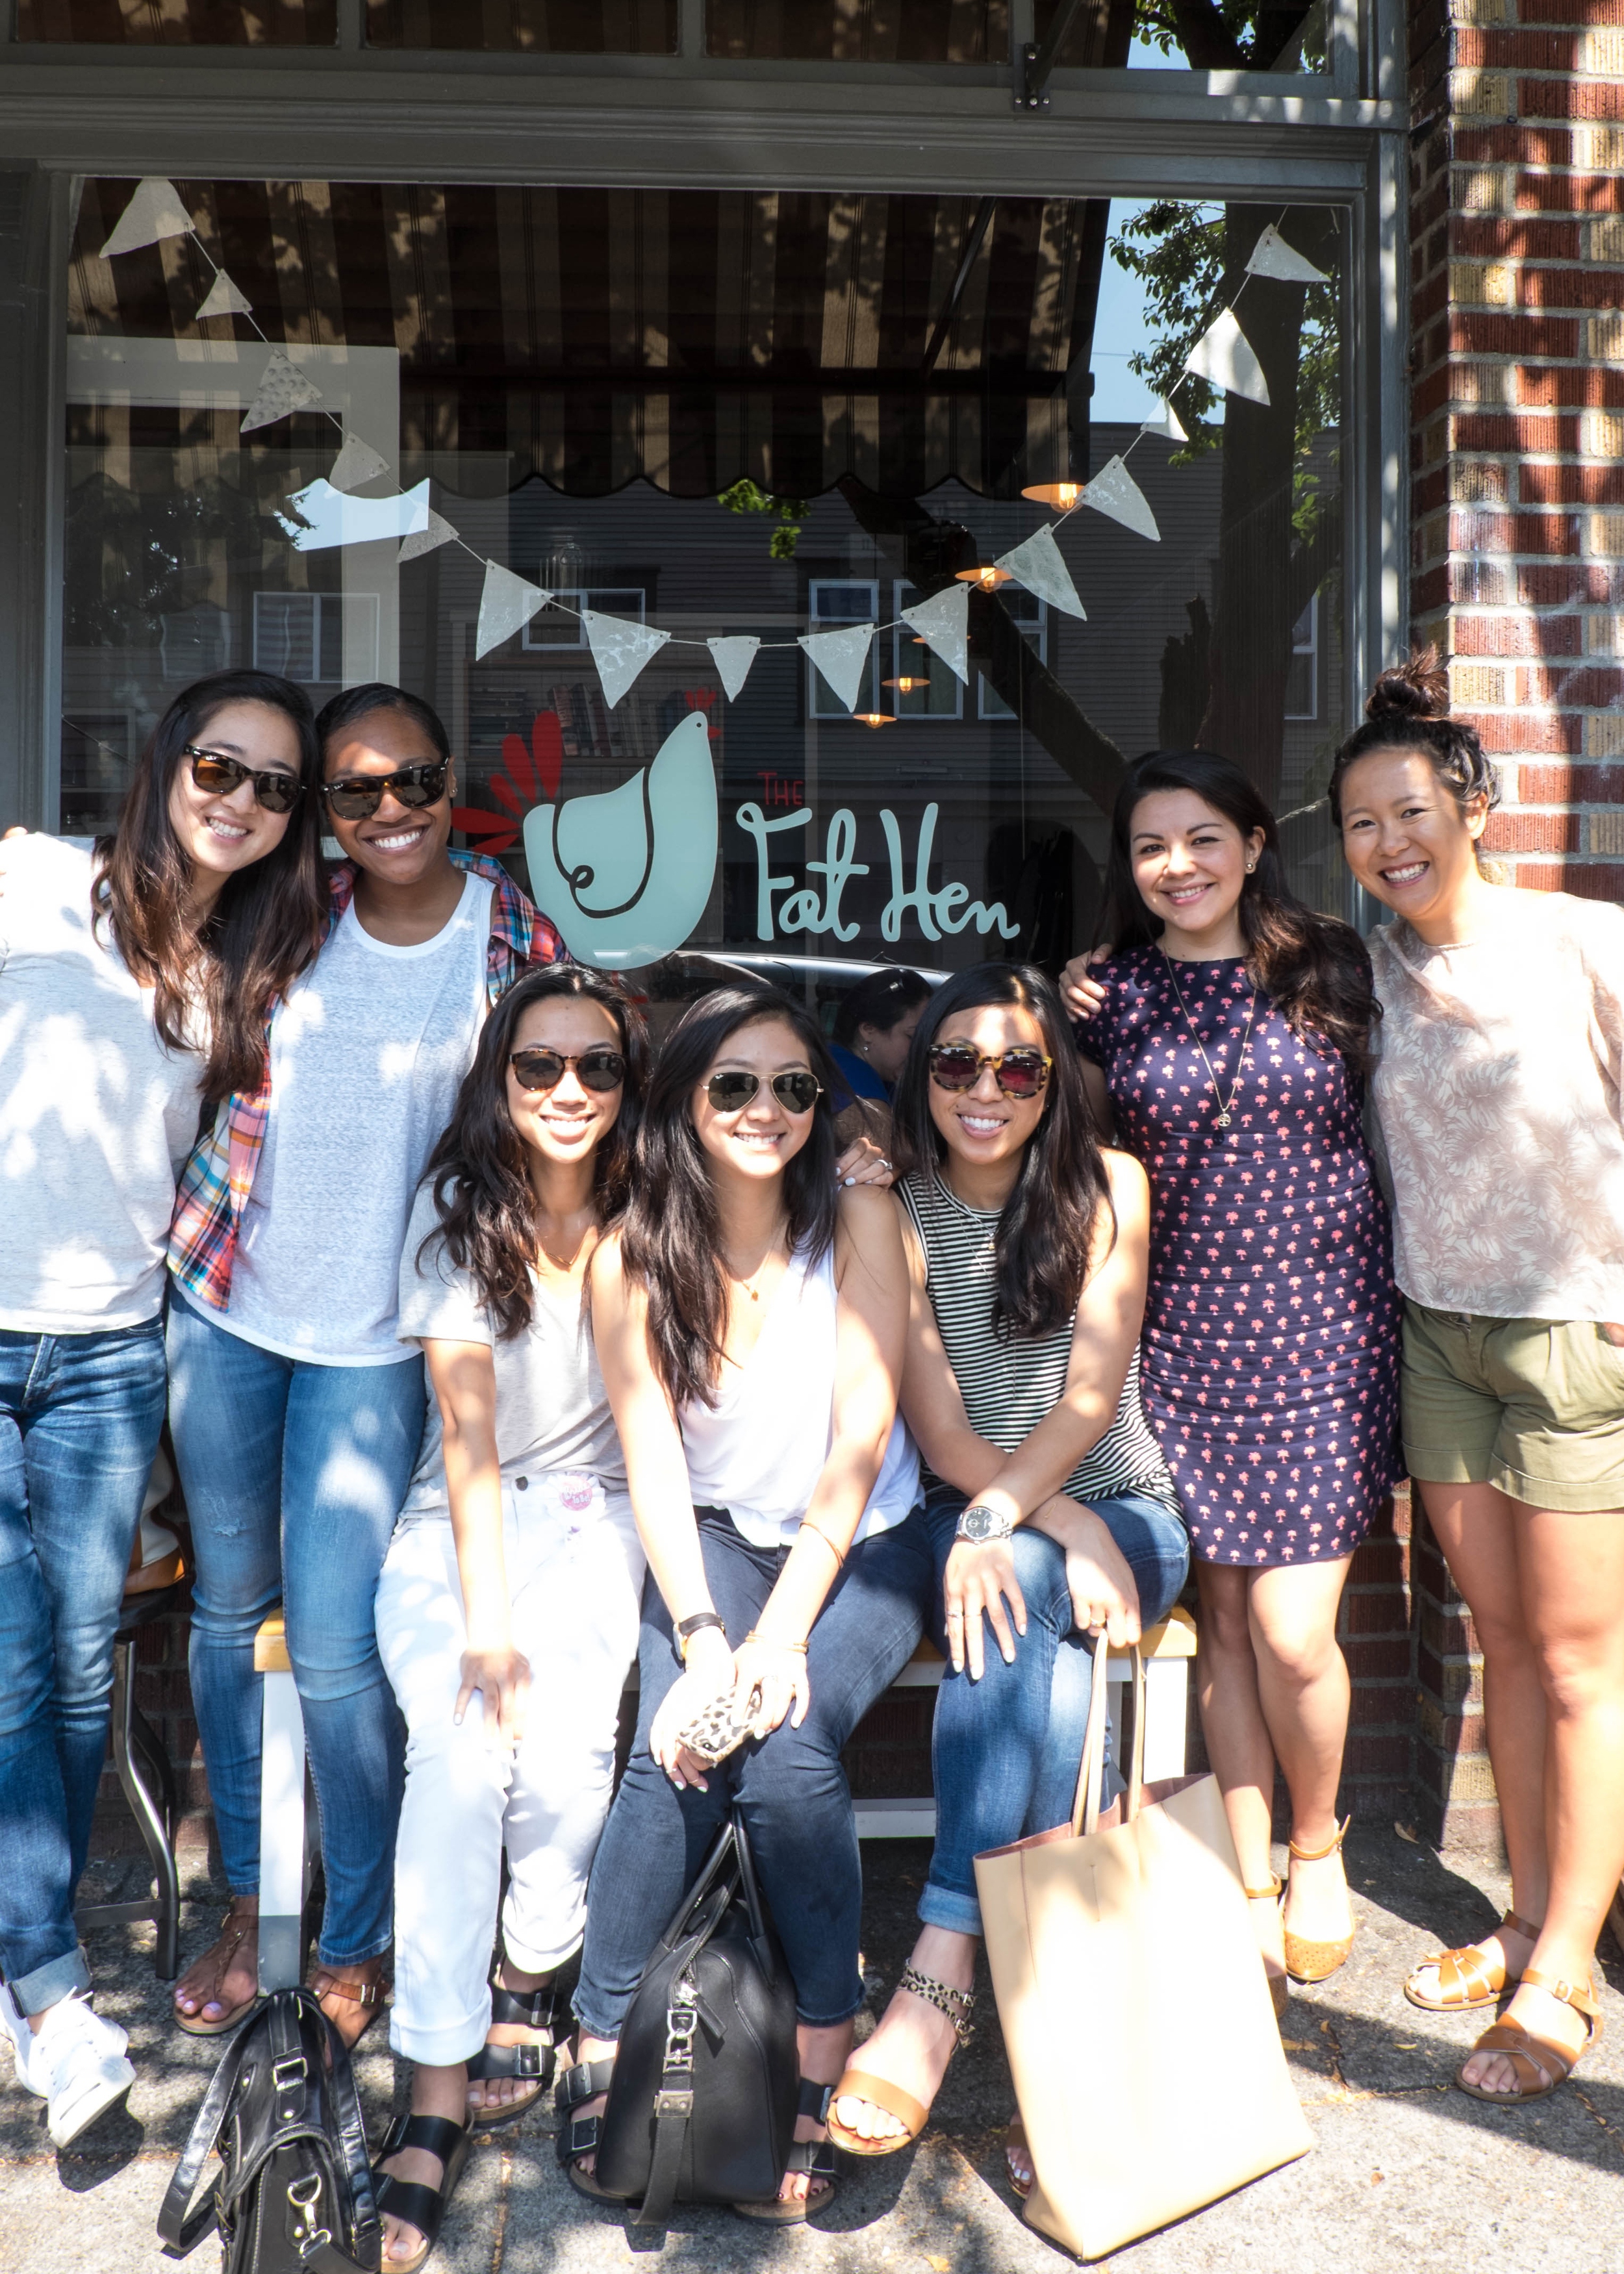 Cute and delicious brunch -  The Fat Hen .